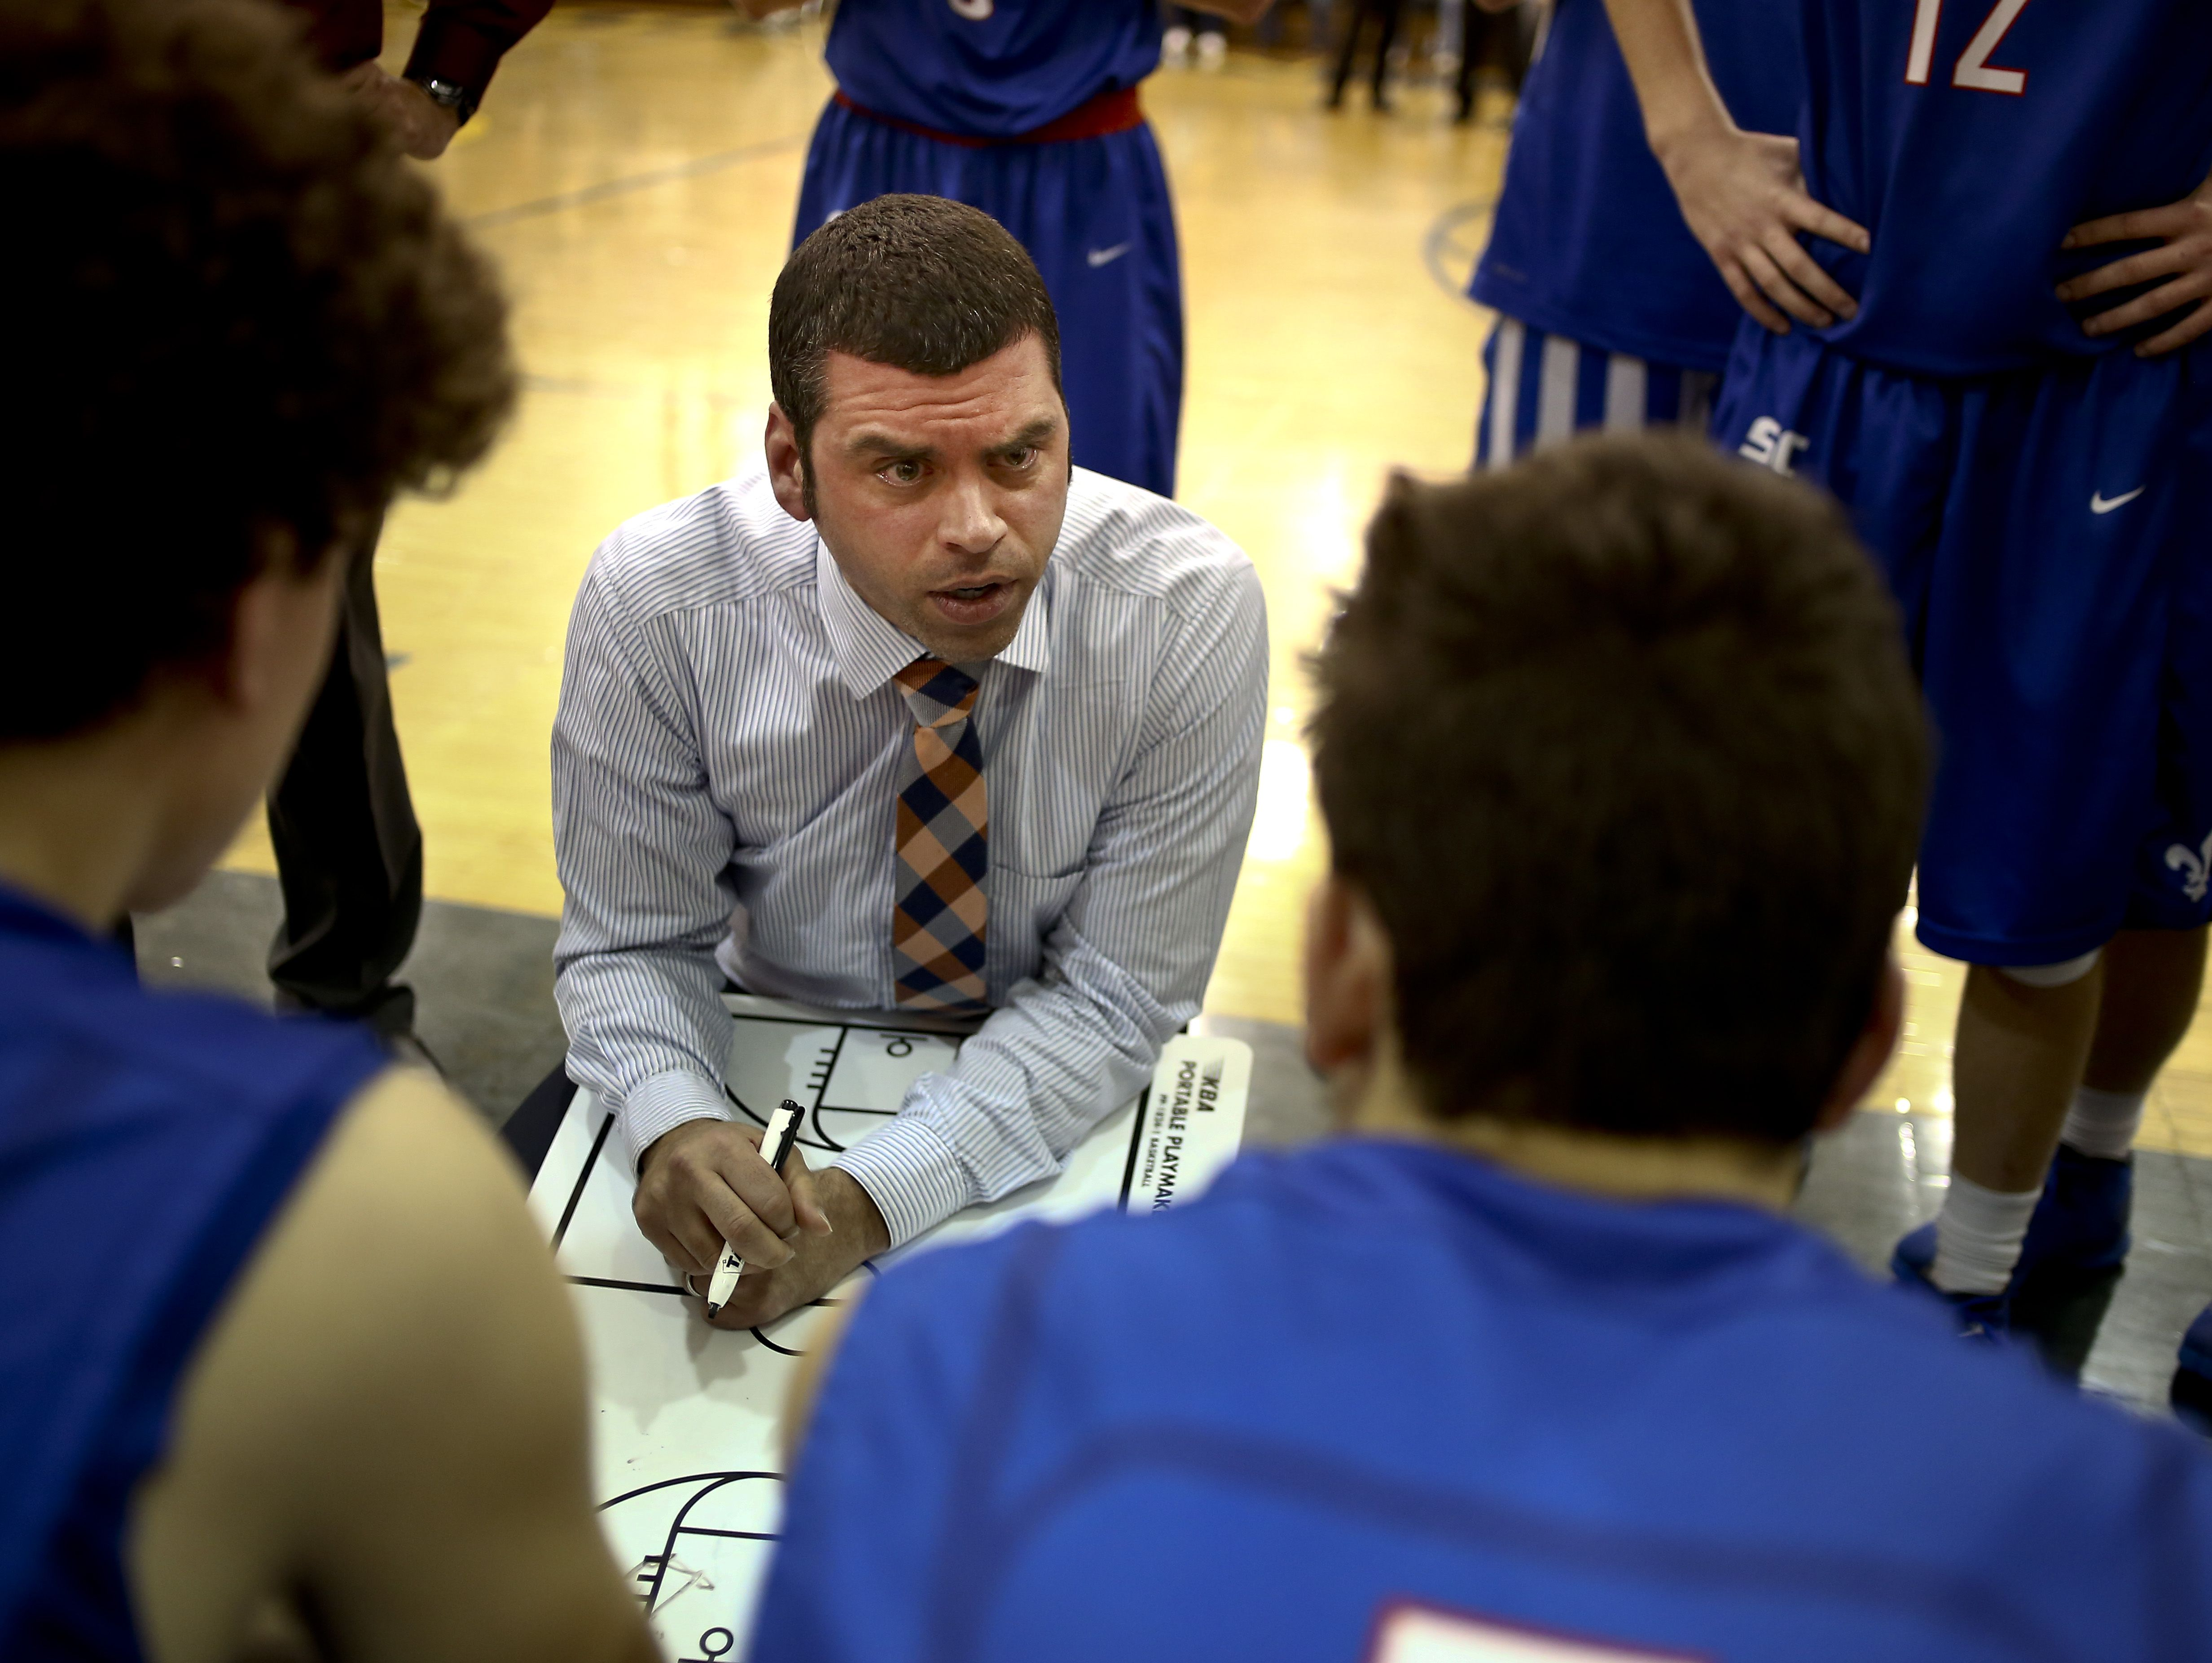 St. Clair coach Shawn Sharrow talks with players in a huddle during the Ed Peltz Holiday Basketball Tournament Friday, Dec. 18, 2015 at Port Huron Northern High School.